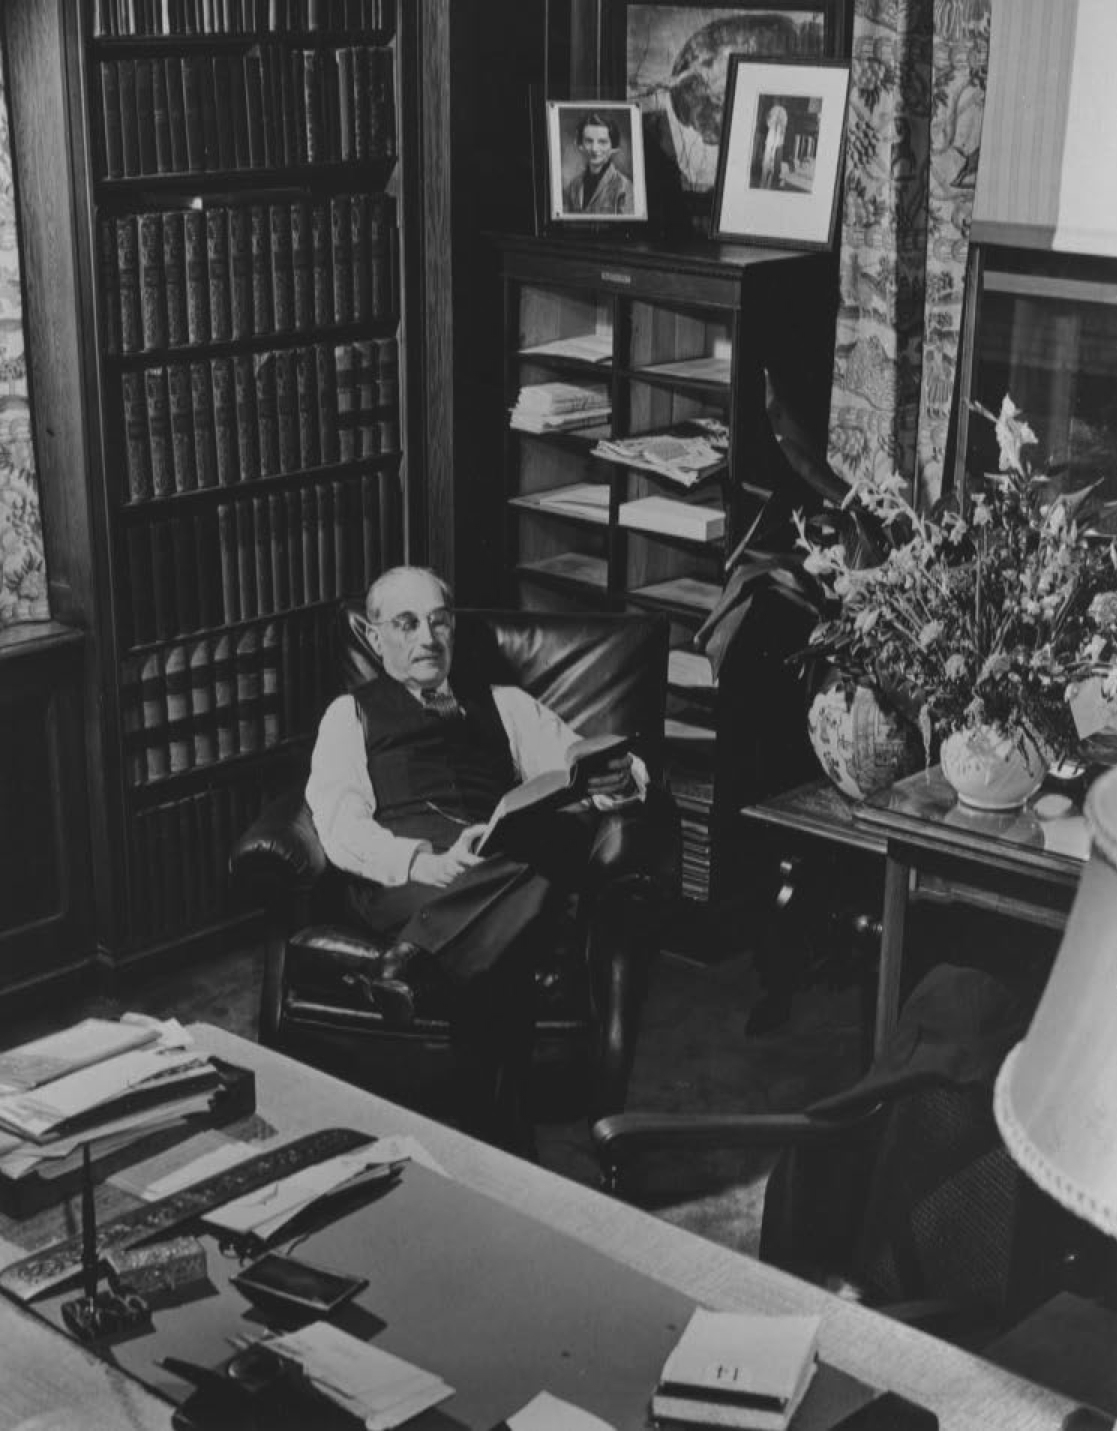 Rabbi Leo M. Franklin in his office (Source: Leo M. Franklin Archives, Temple Beth El)